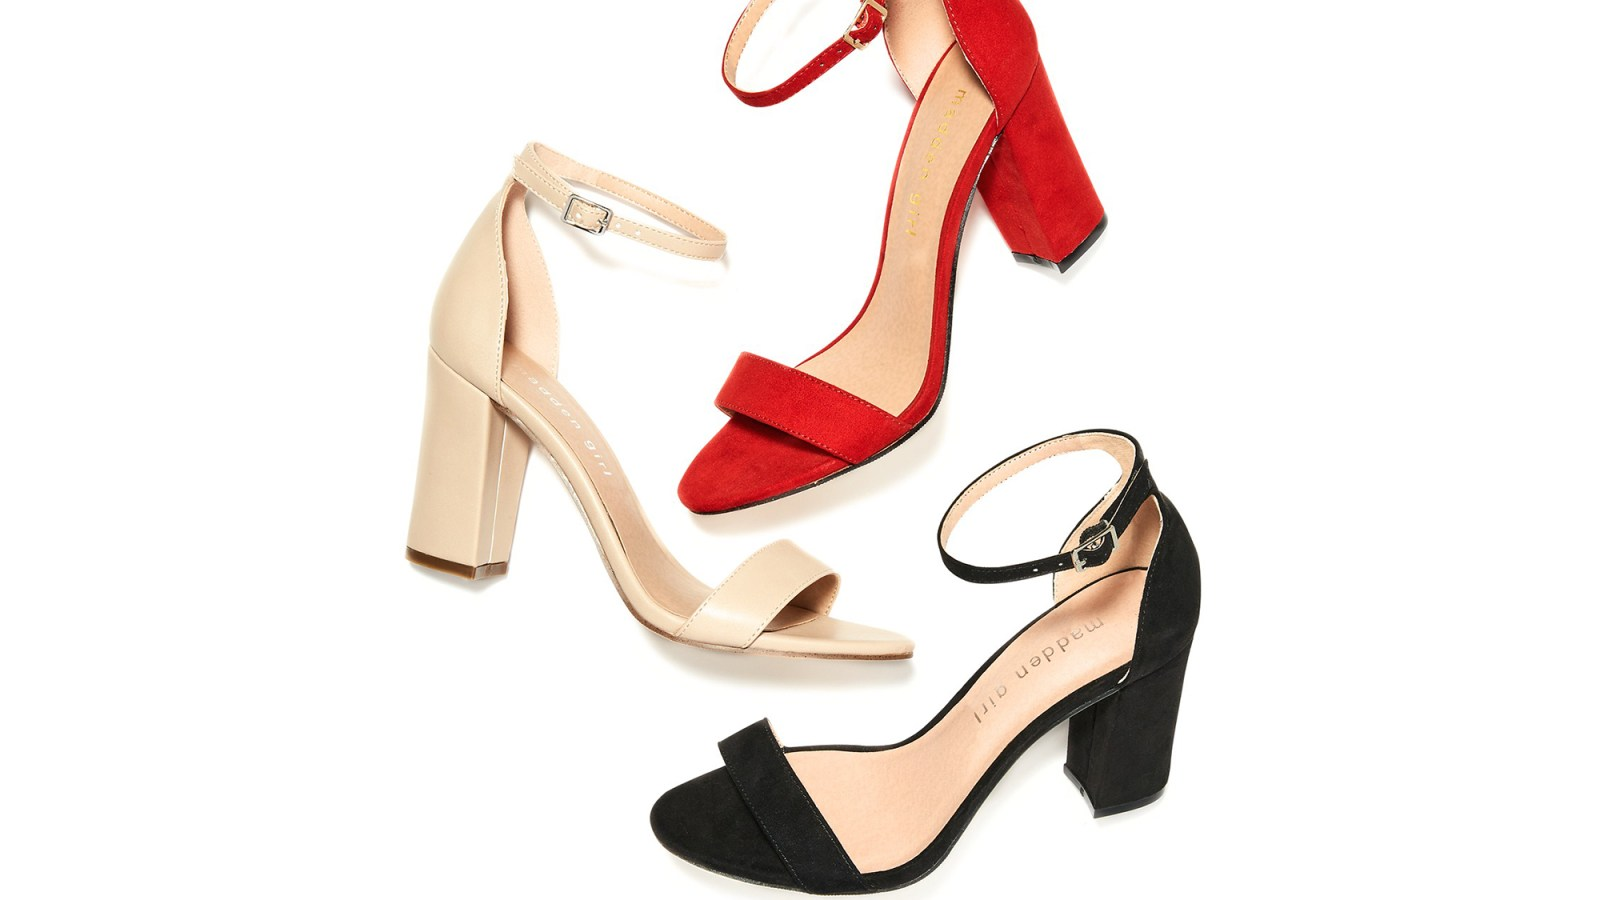 875db99c1f Let Your Personality Shine With These Comfy Block Heel Sandals. By Suzy  Forman. Madden Girl heels